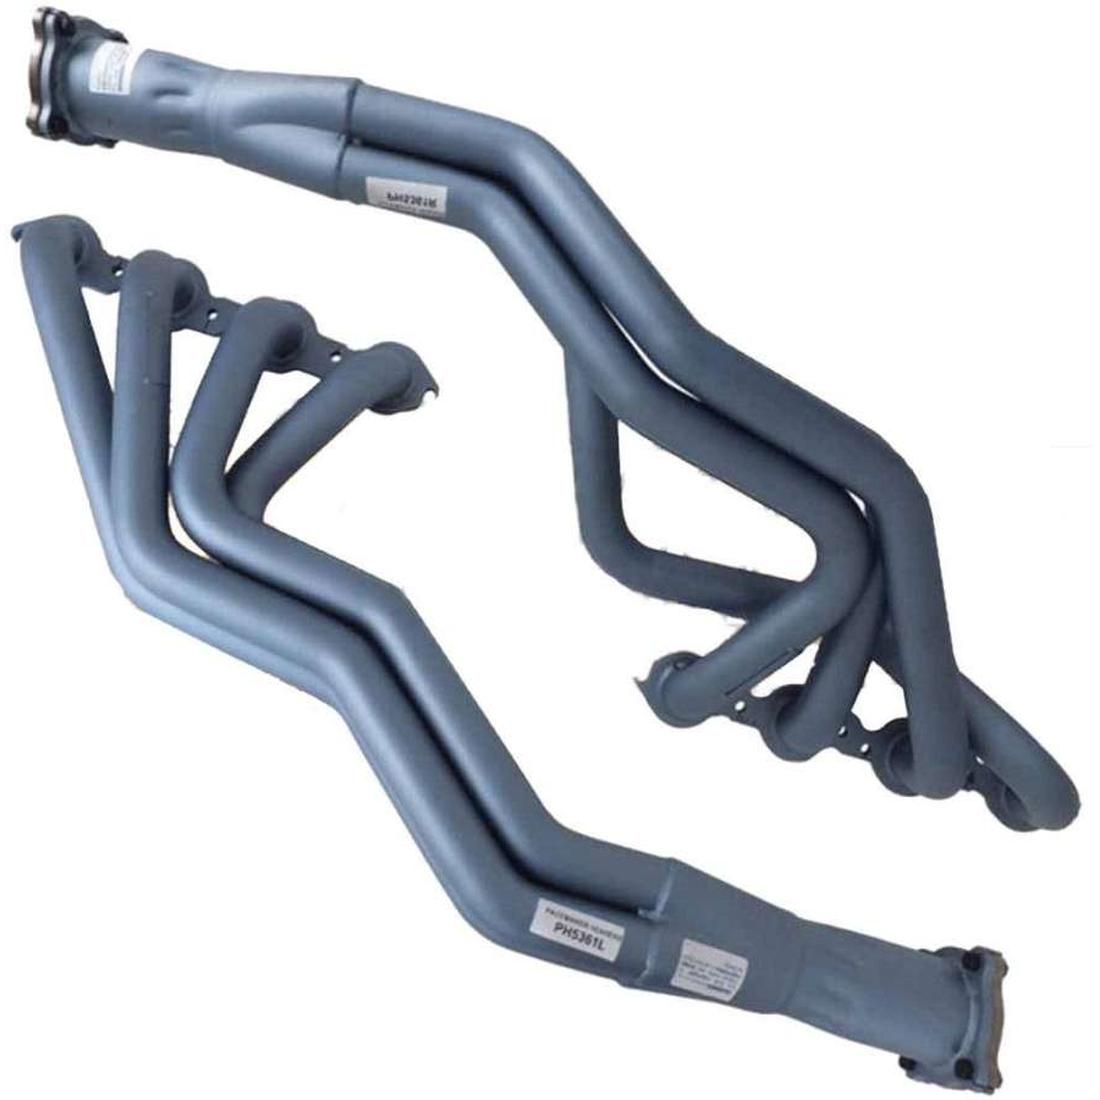 "Commodore VT VX VU VY VZ 5.7L Tuned 1 3/4"" Prim Pipes Pacemaker Extractors / Headers image"